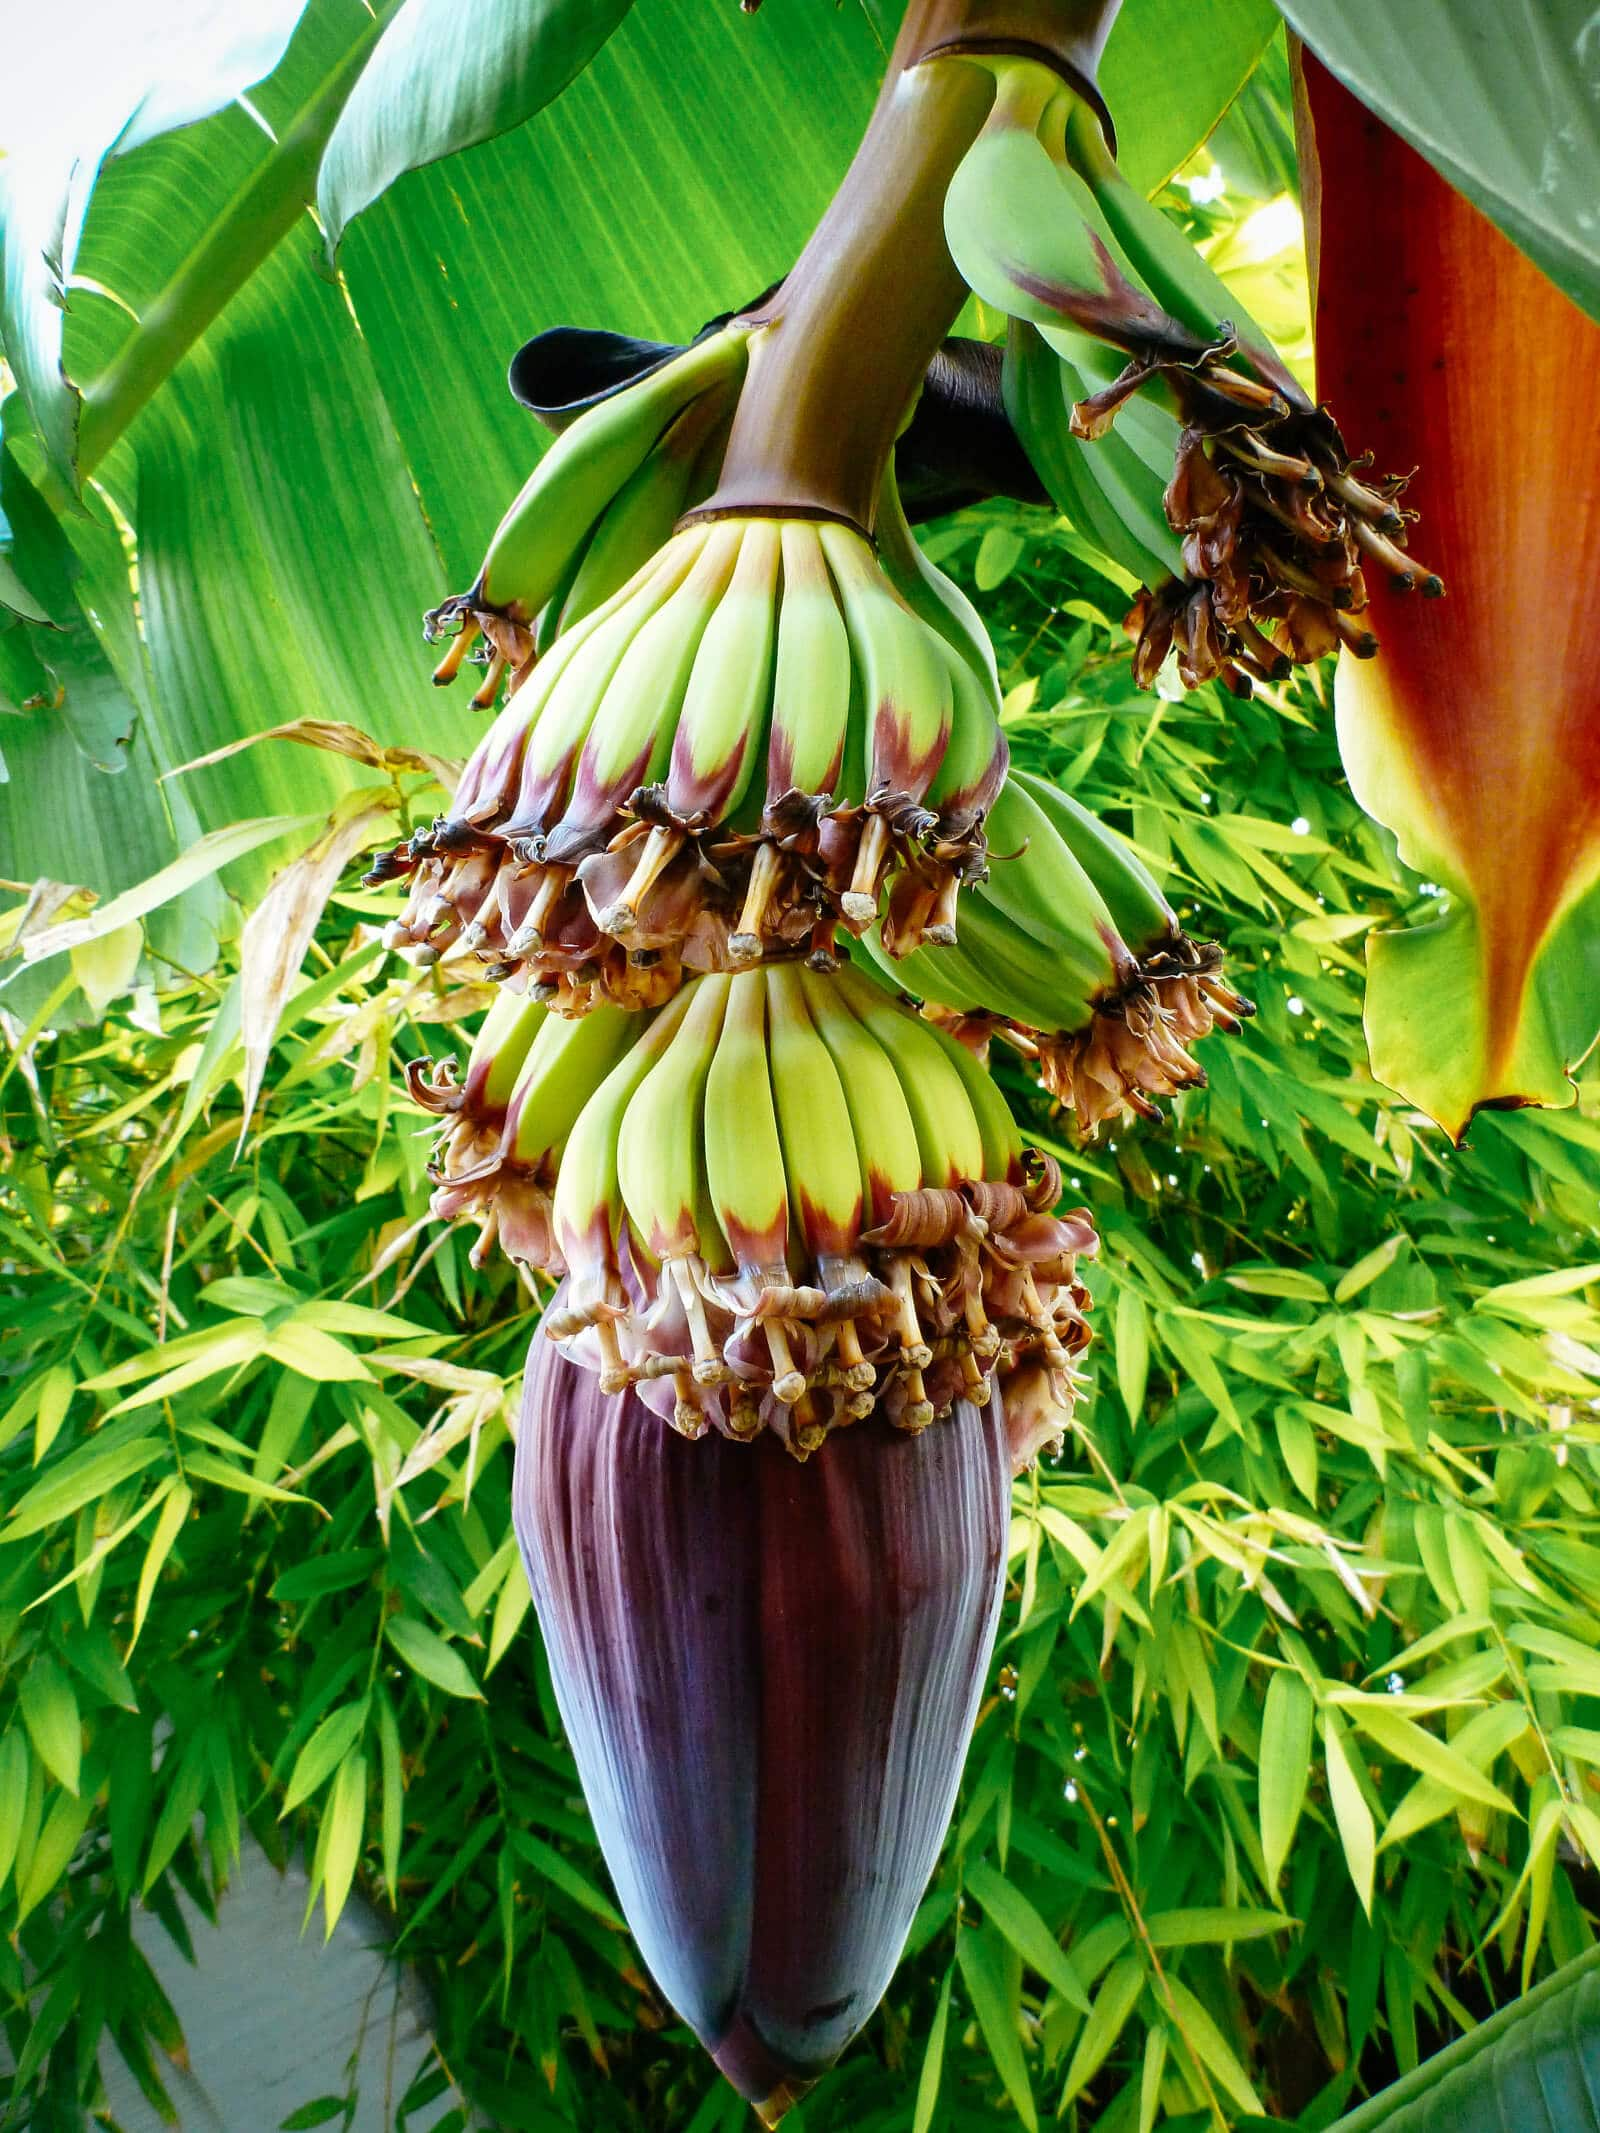 Young bananas growing on a single plant